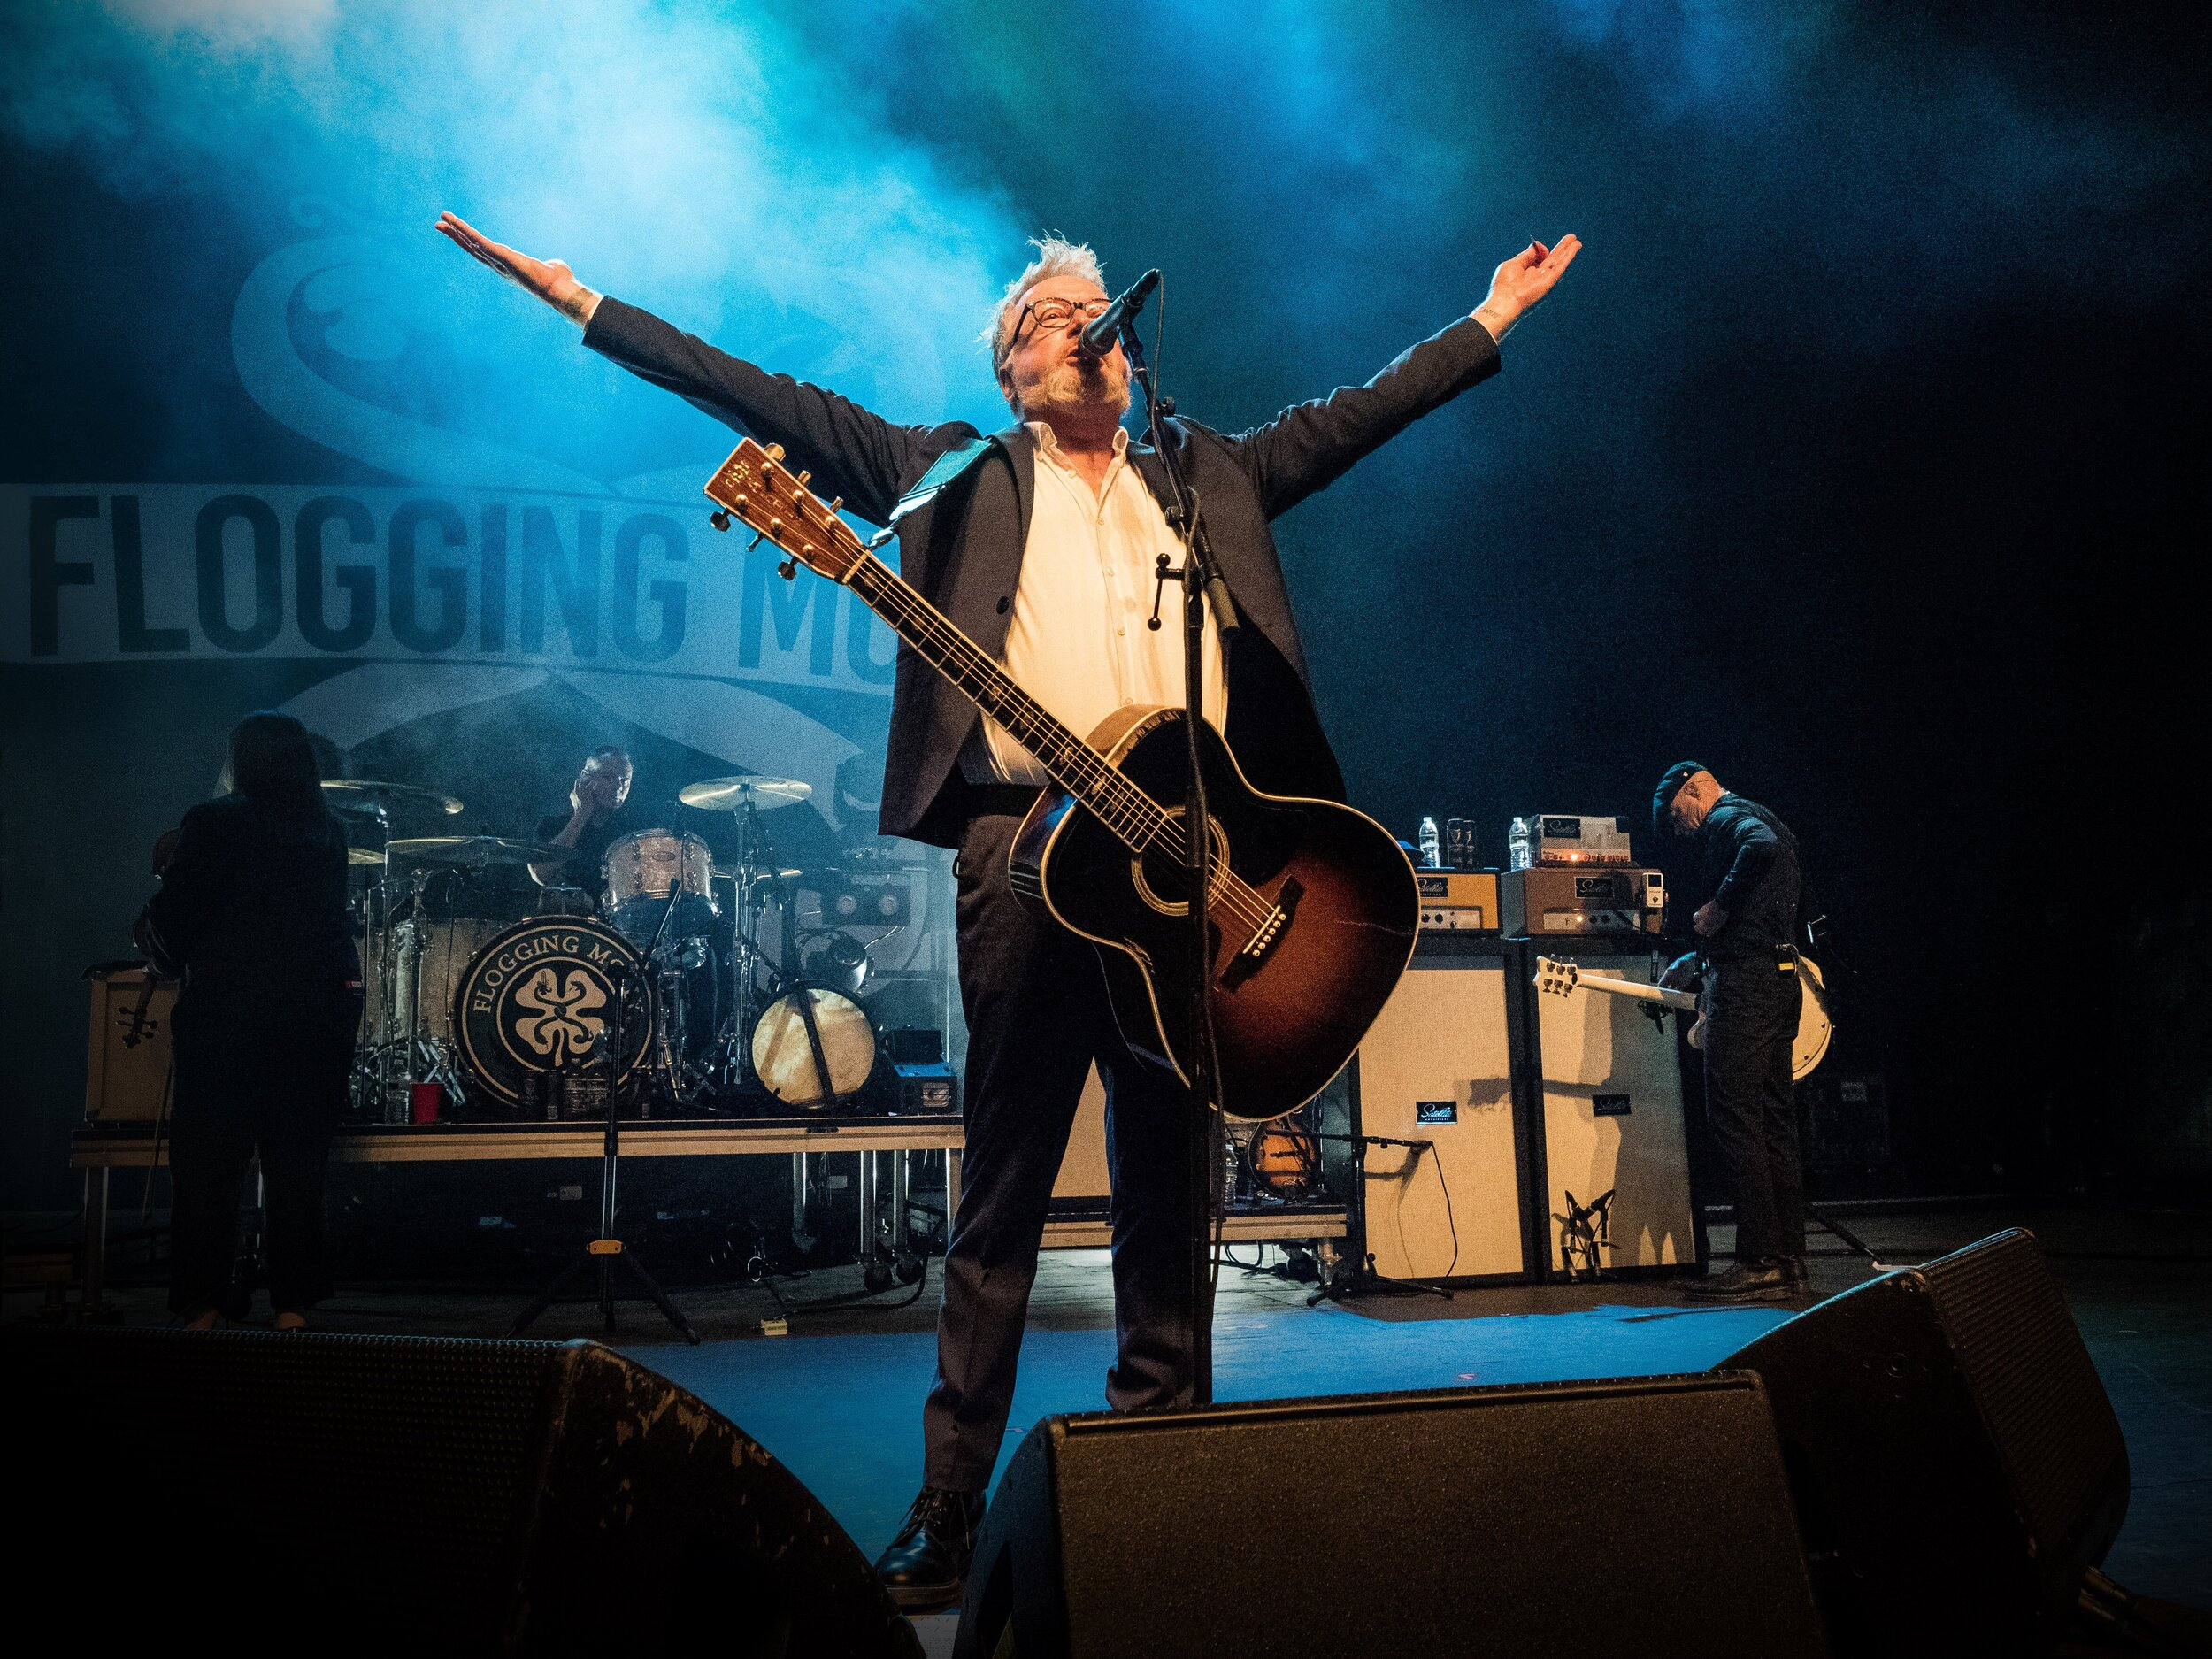 Flogging Molly       // 2019-09-06 //   Michigan Lottery Amphitheatre At Freedom Hill    -  Sterling Heights, MI // Photos by  Brooke Elizabeth